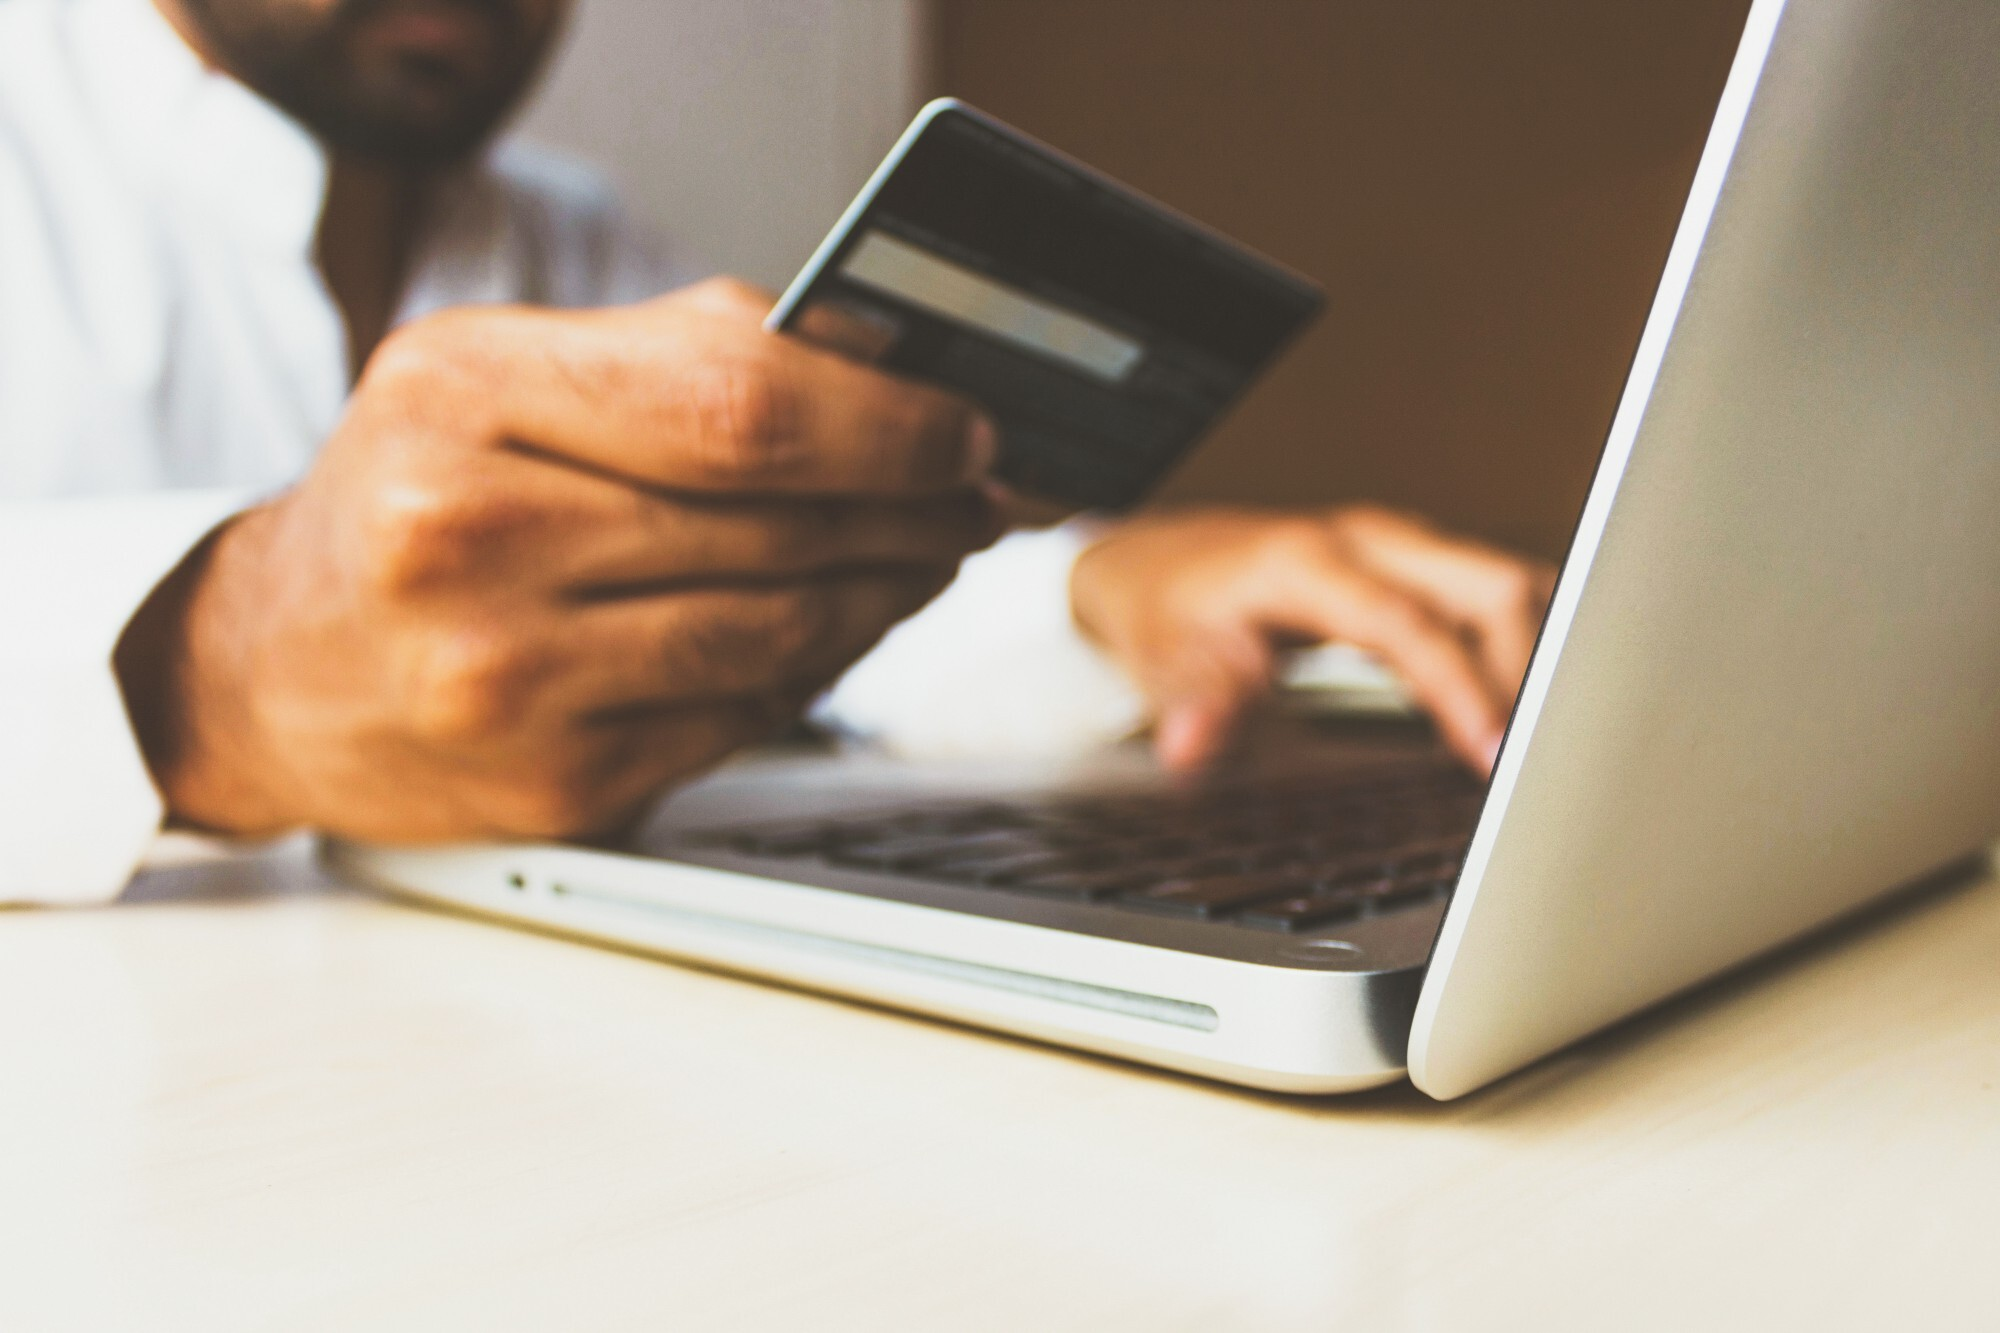 A novel approach to preventing credit card fraud